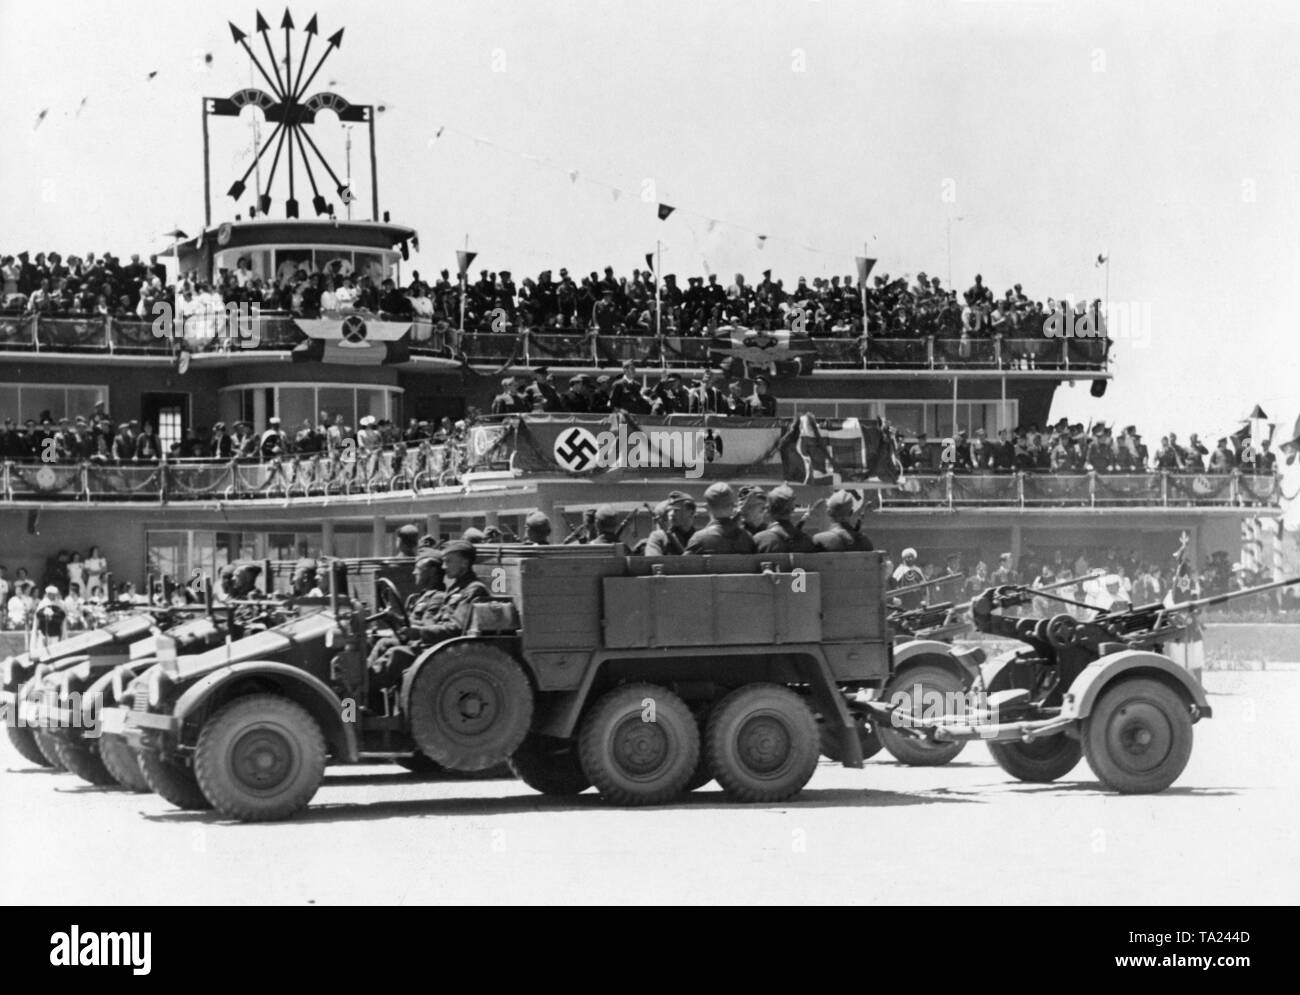 Photo of a German anti-aircraft unit of the Condor Legion (truck of the type Krupp L2 H143 with an attached 2cm flak 30) during a victory parade for General Francisco Franco at Barajas airport, Madrid, after the invasion of the city on March 28, 1939. In the background there is the terminal of the airport with the VIP stand for Franco and the symbol of the Fascist Party of Spain, the Falange (arrows and yokes). - Stock Image